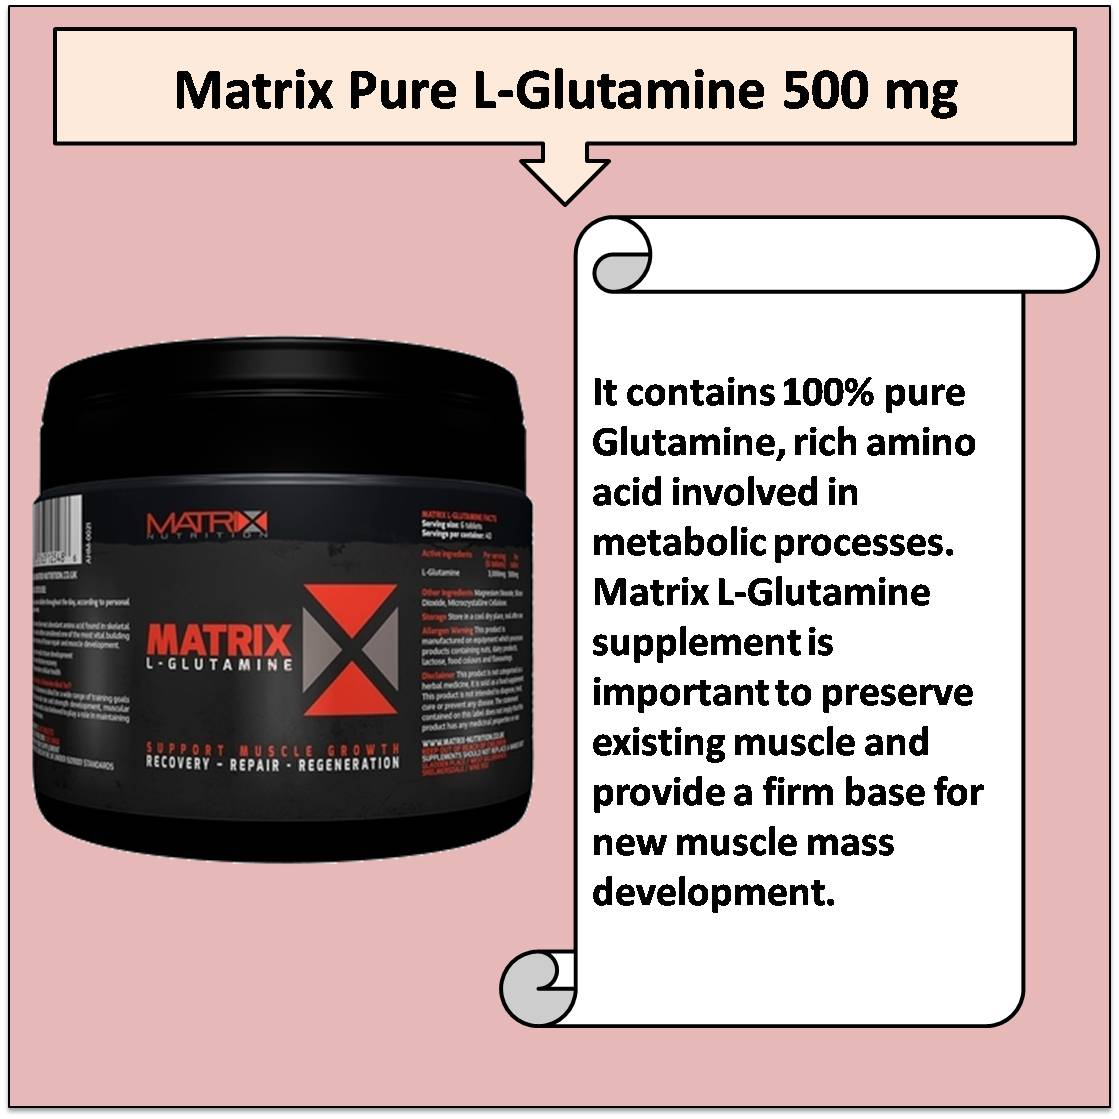 Matrix Pure L-Glutamine 500 mg